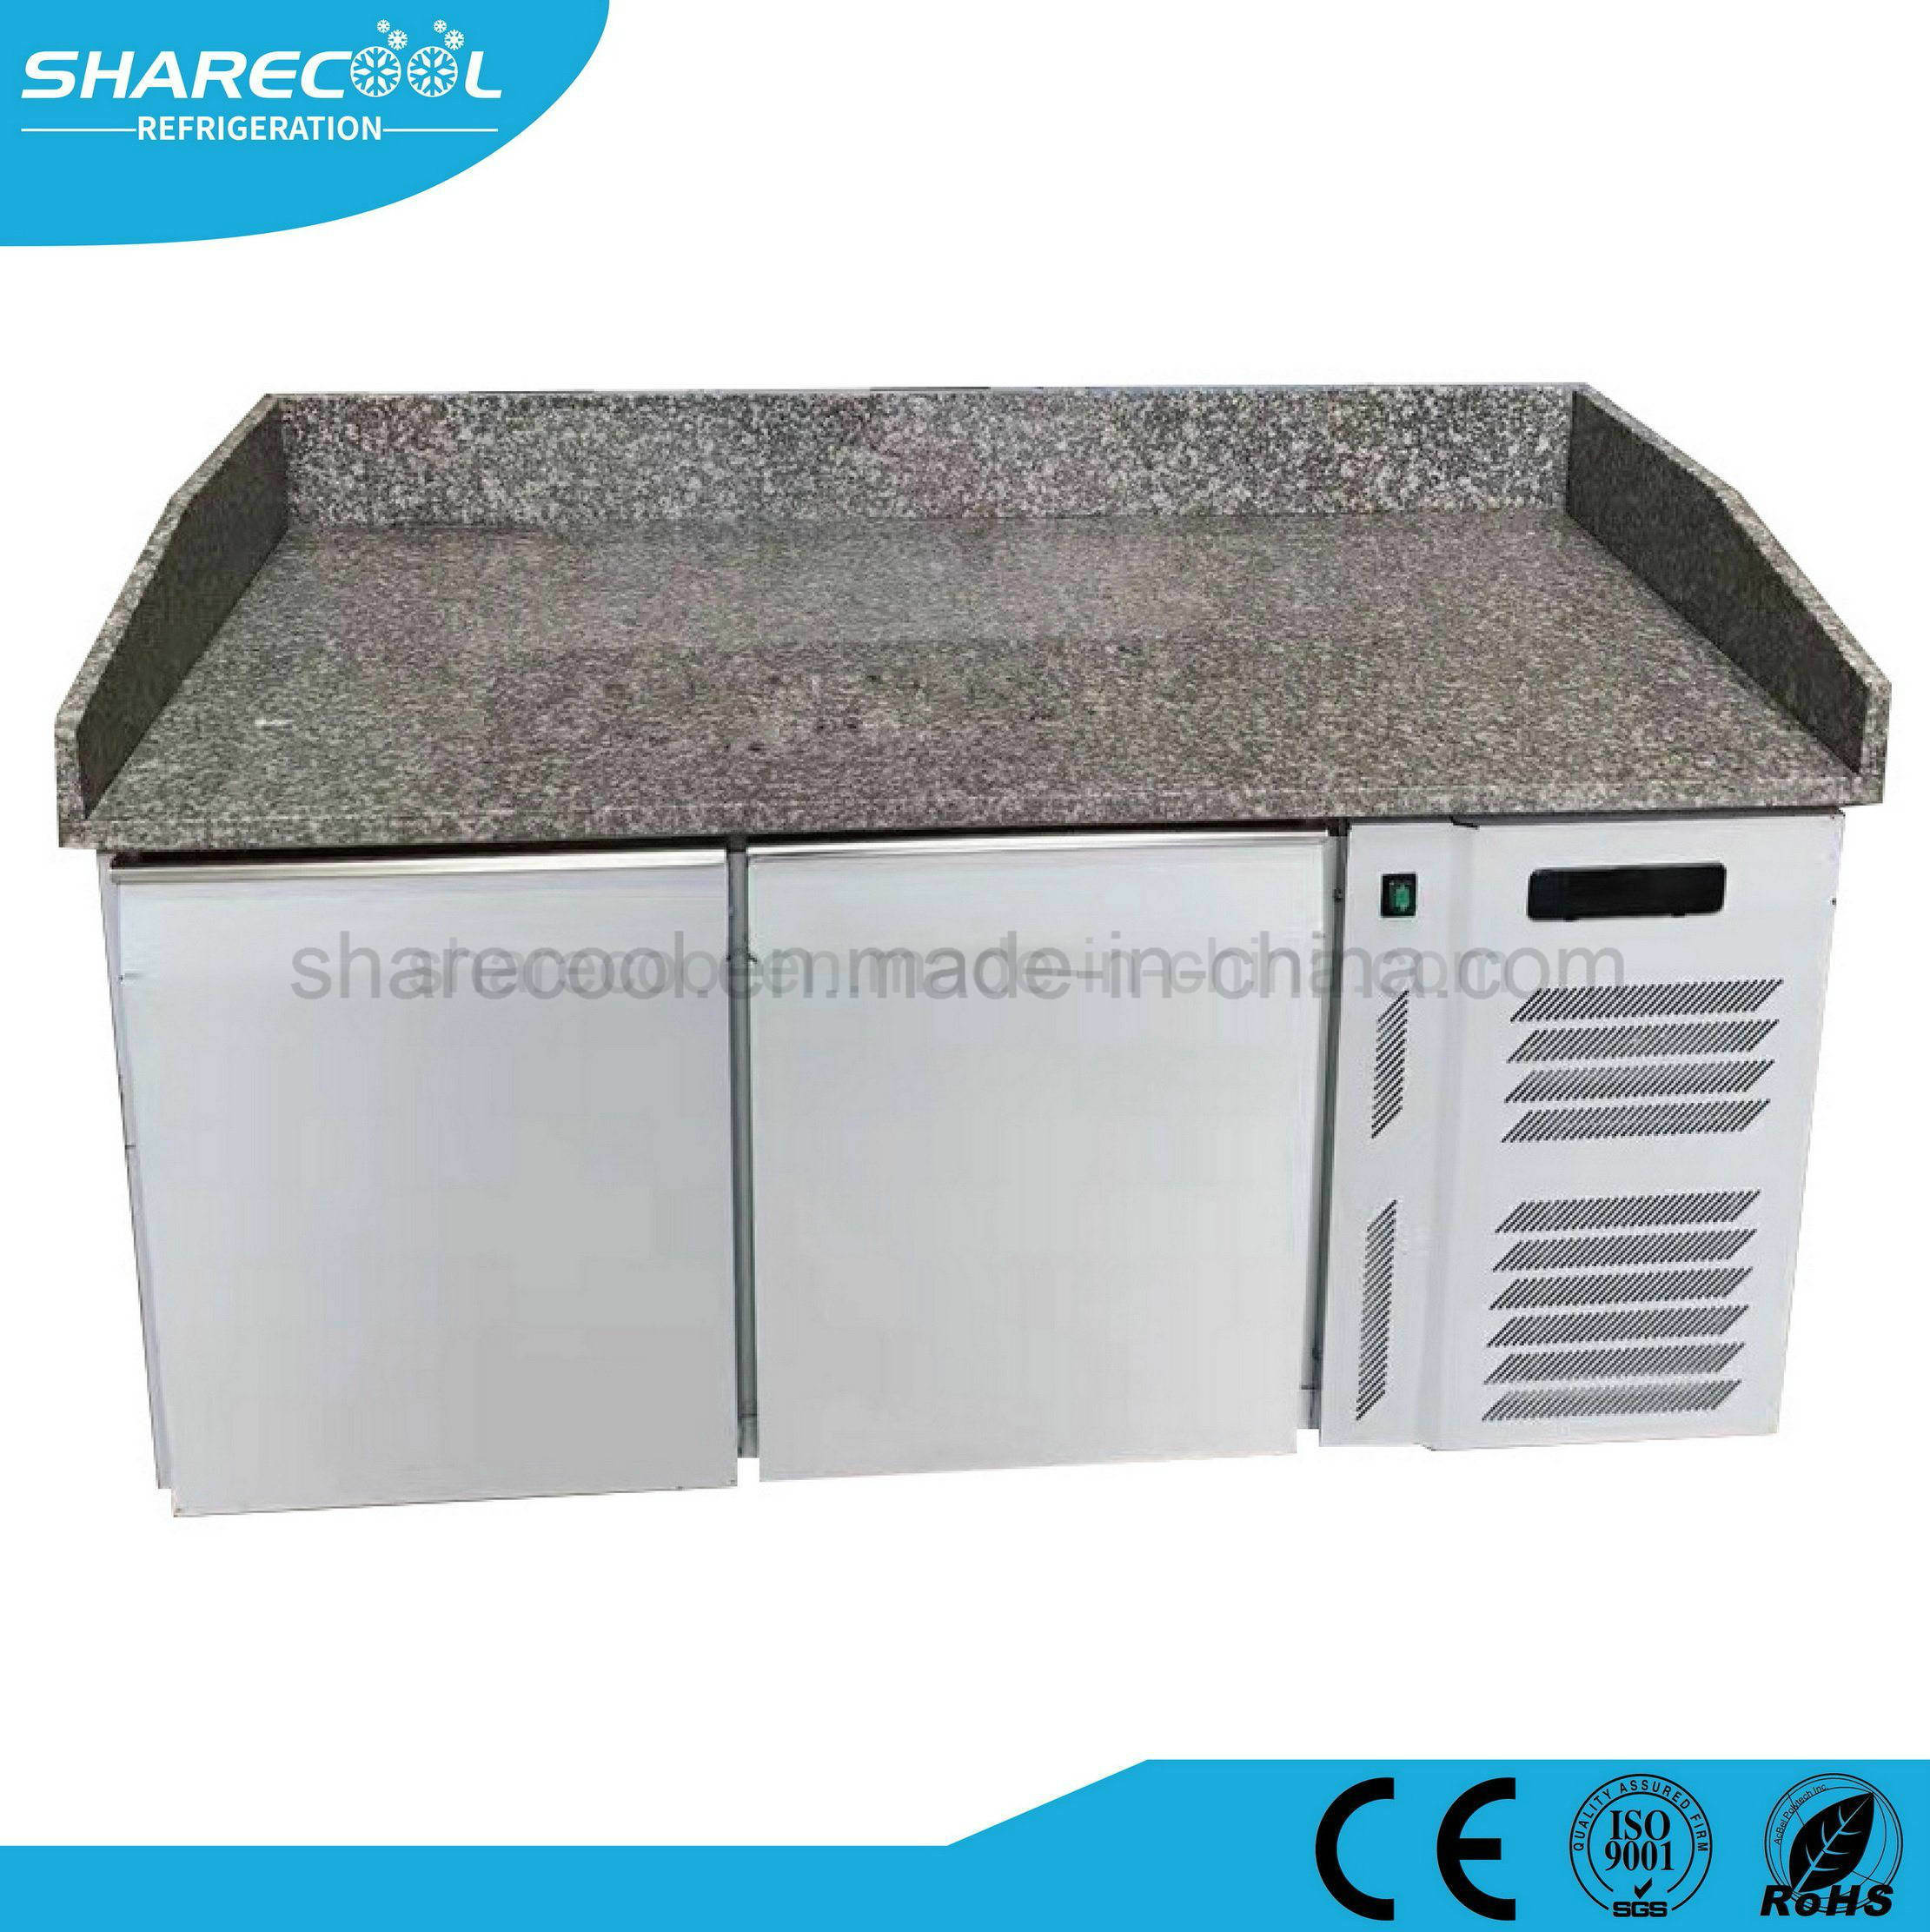 Stupendous Hot Item Marble Top Commercial Kitchen Double Door Refrigerator With Workbench Pdpeps Interior Chair Design Pdpepsorg